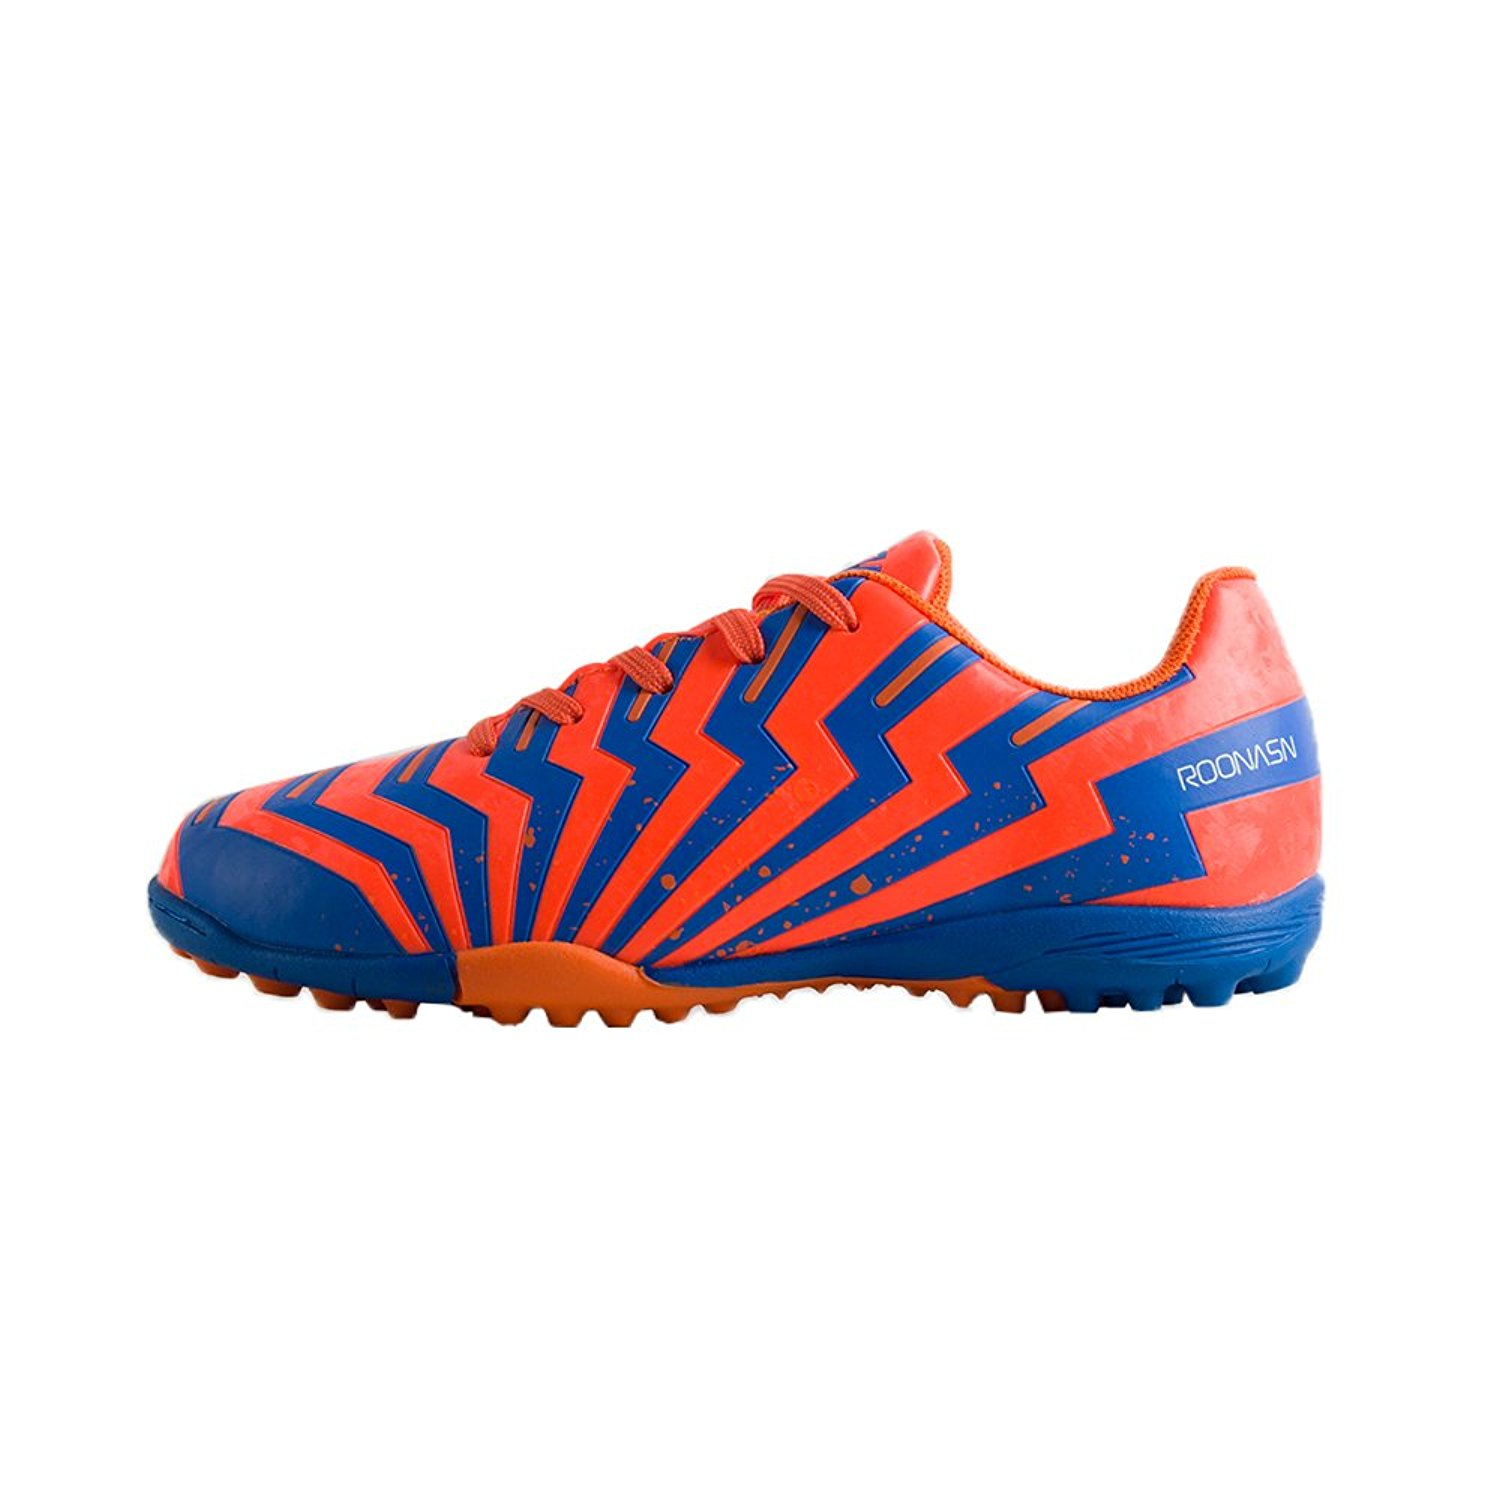 75e72436a Get Quotations · ROONASN Kids  Outdoor Indoor Soccer Shoes Athletic Soccer  Cleats Football Boots Shoes(Little